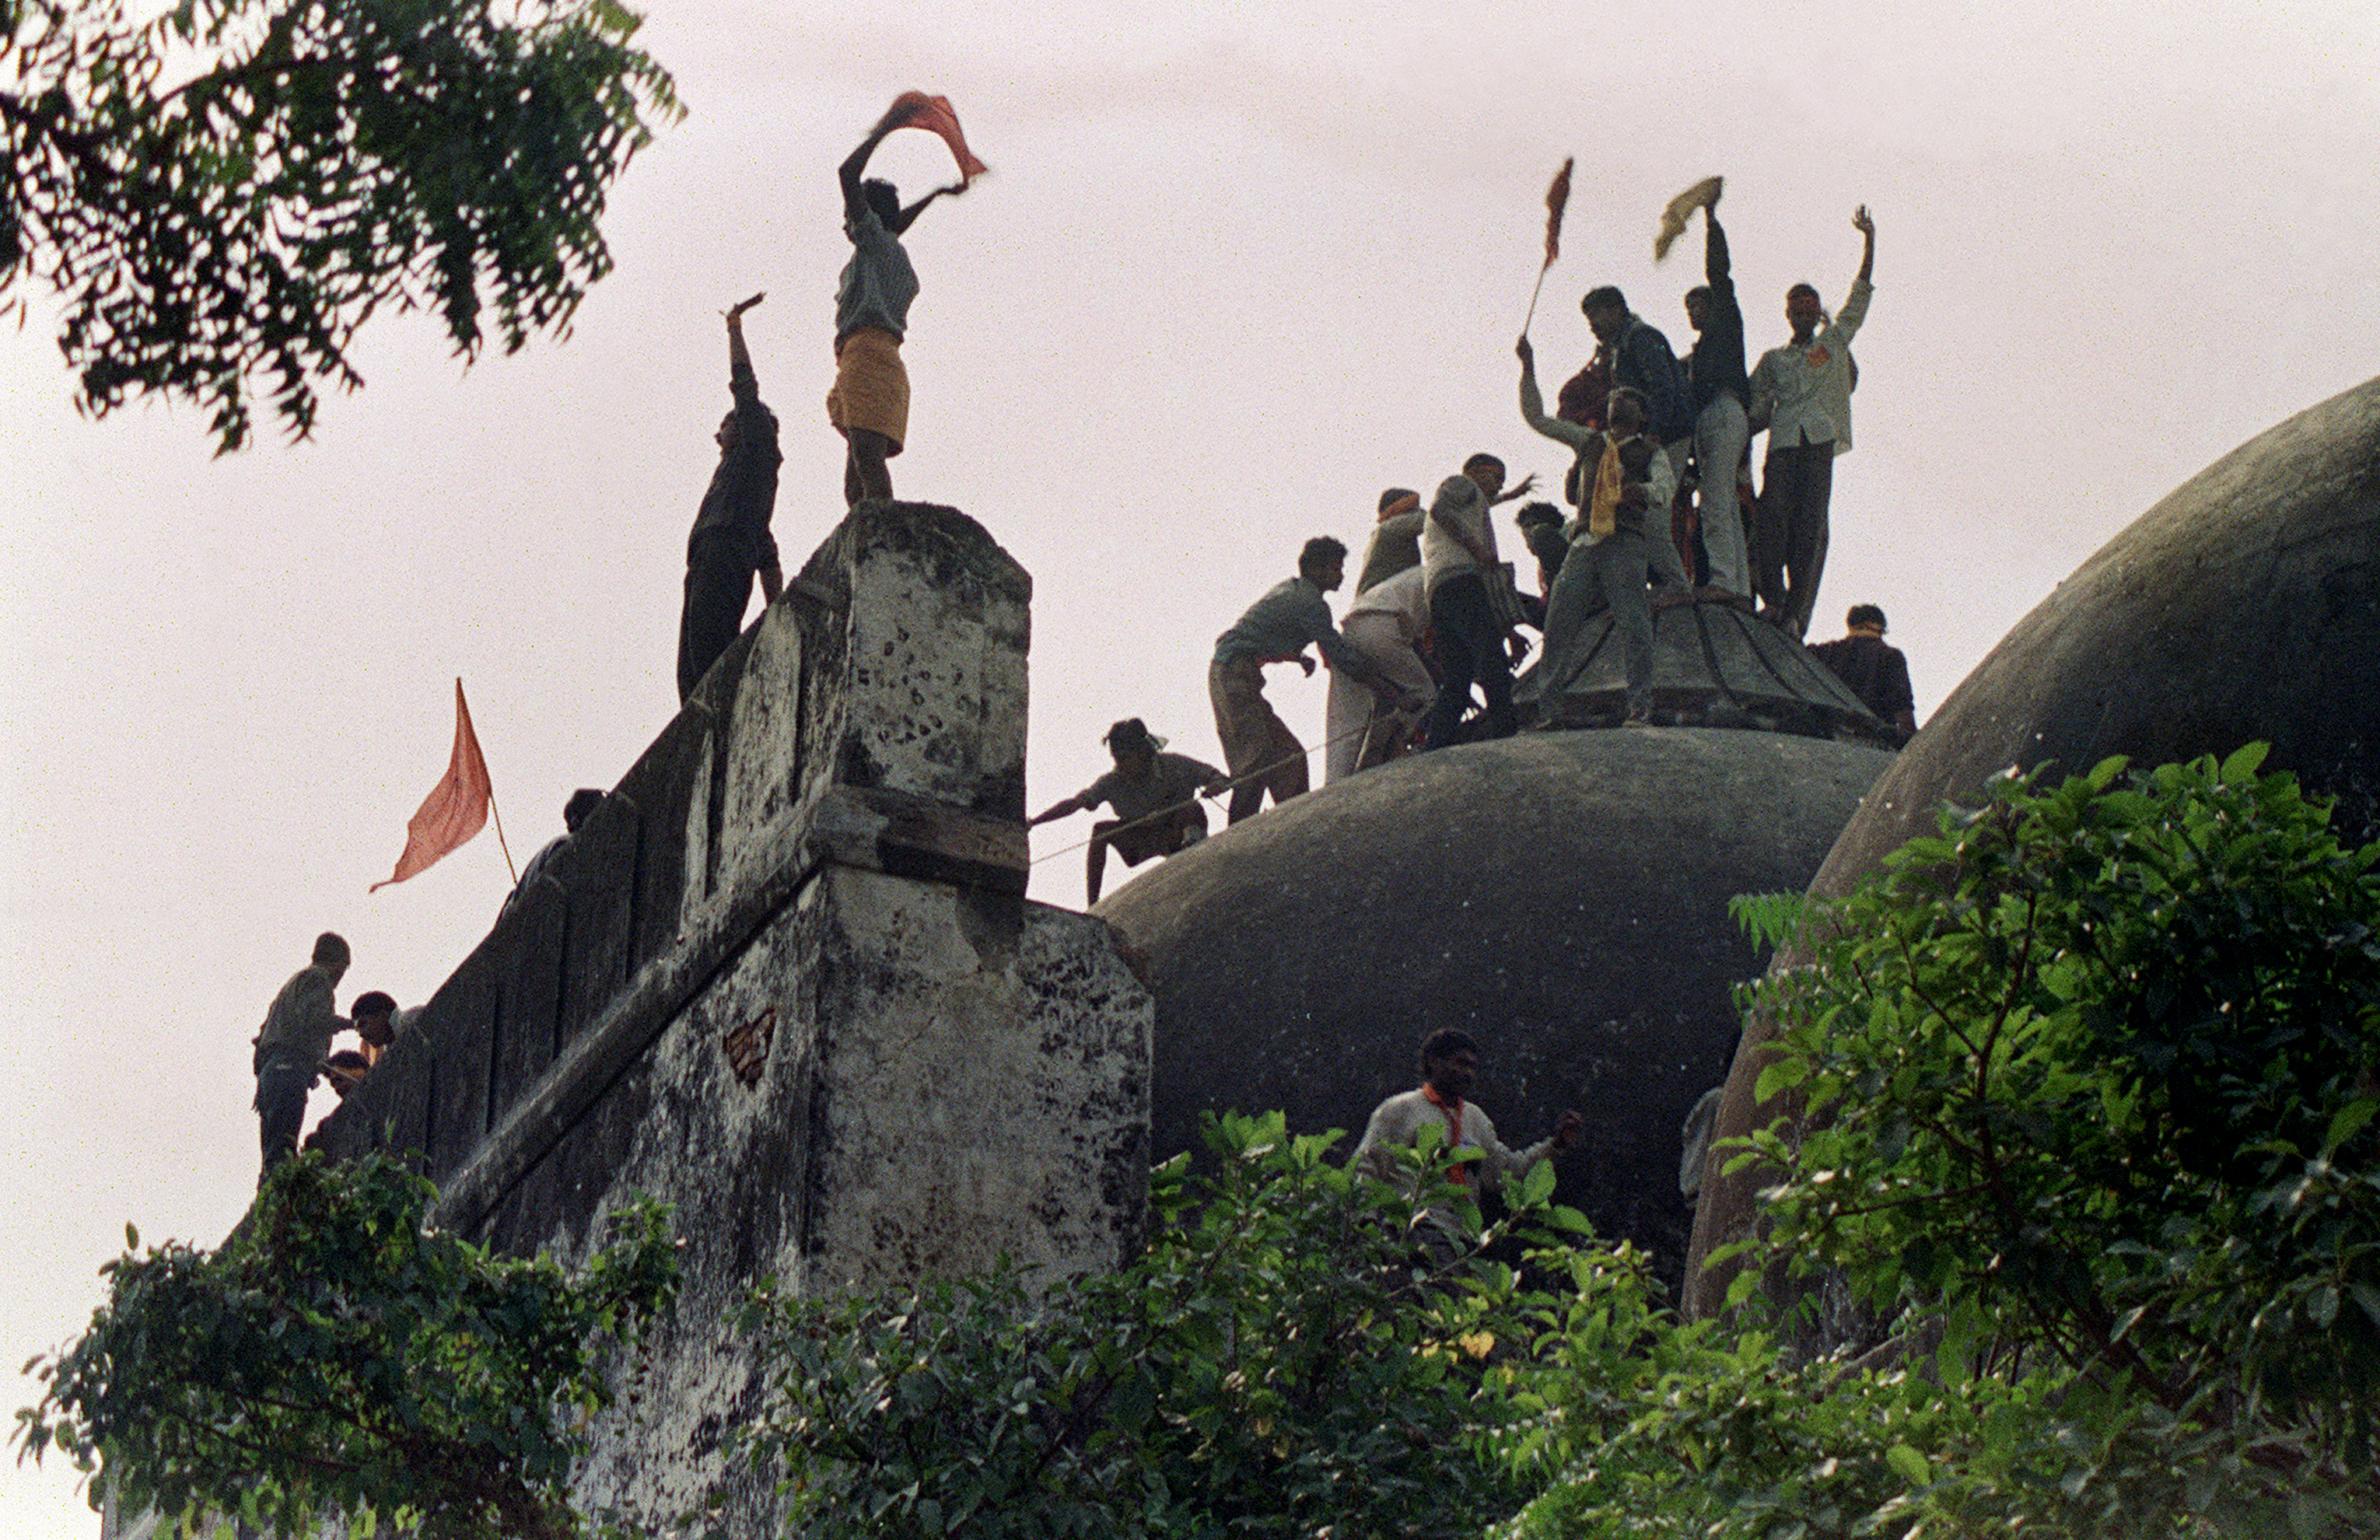 December 6, 1992: Hindu mob climb atop the 16th century Muslim Babri Mosque five hours before the structure was completely demolished by hundreds supporting Hindu fundamentalist activists.